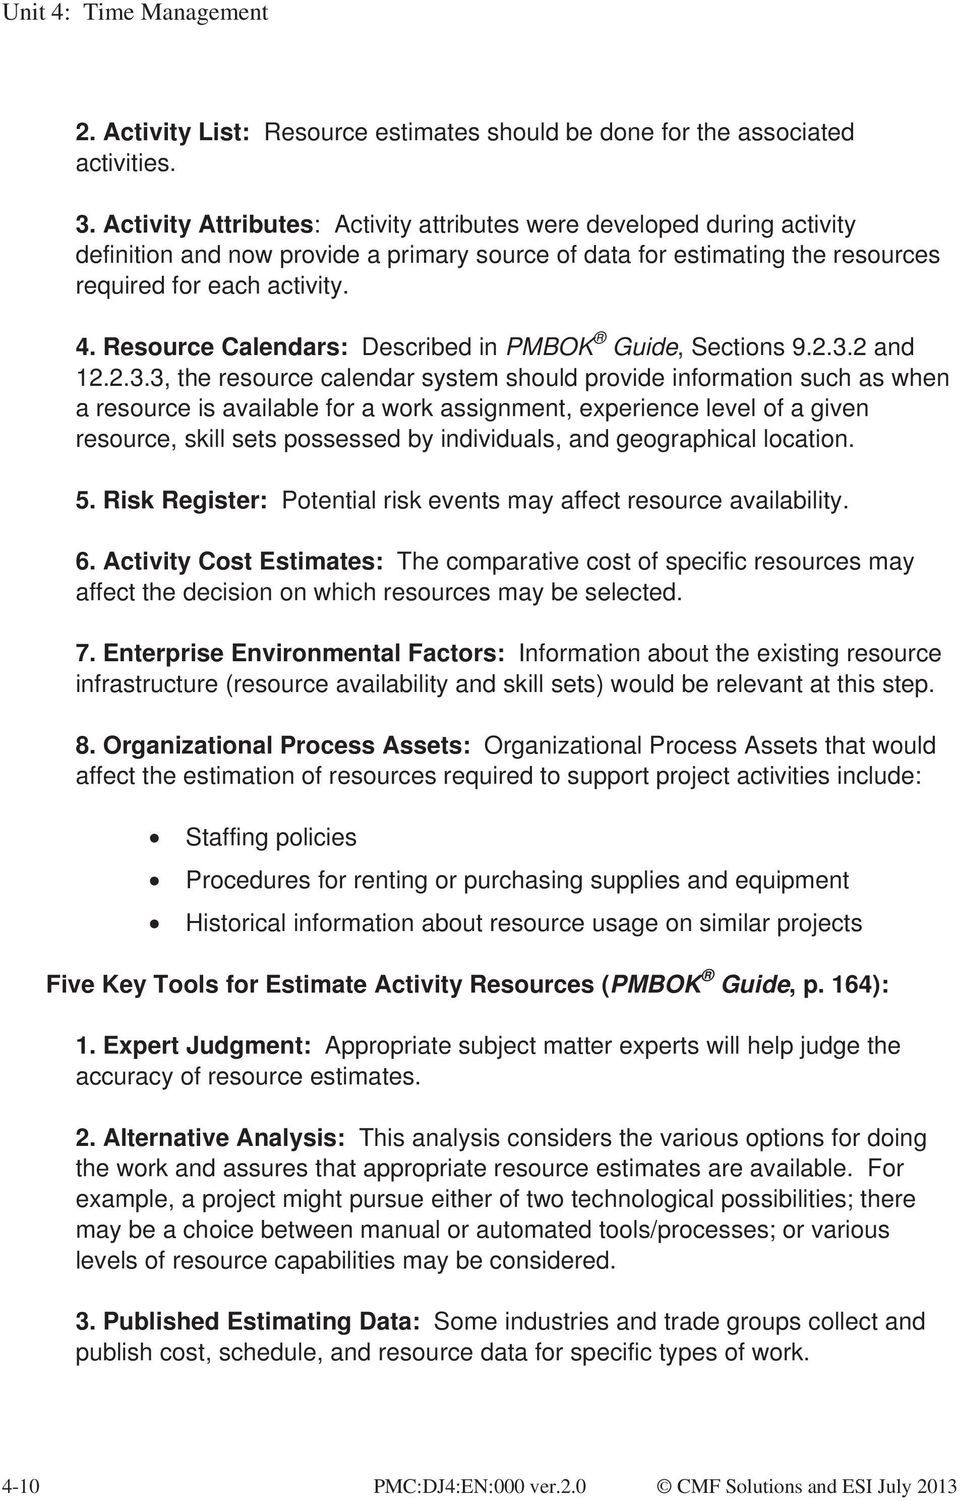 Resource Calendars: Described in PMBOK Guide, Sections 9.2.3.